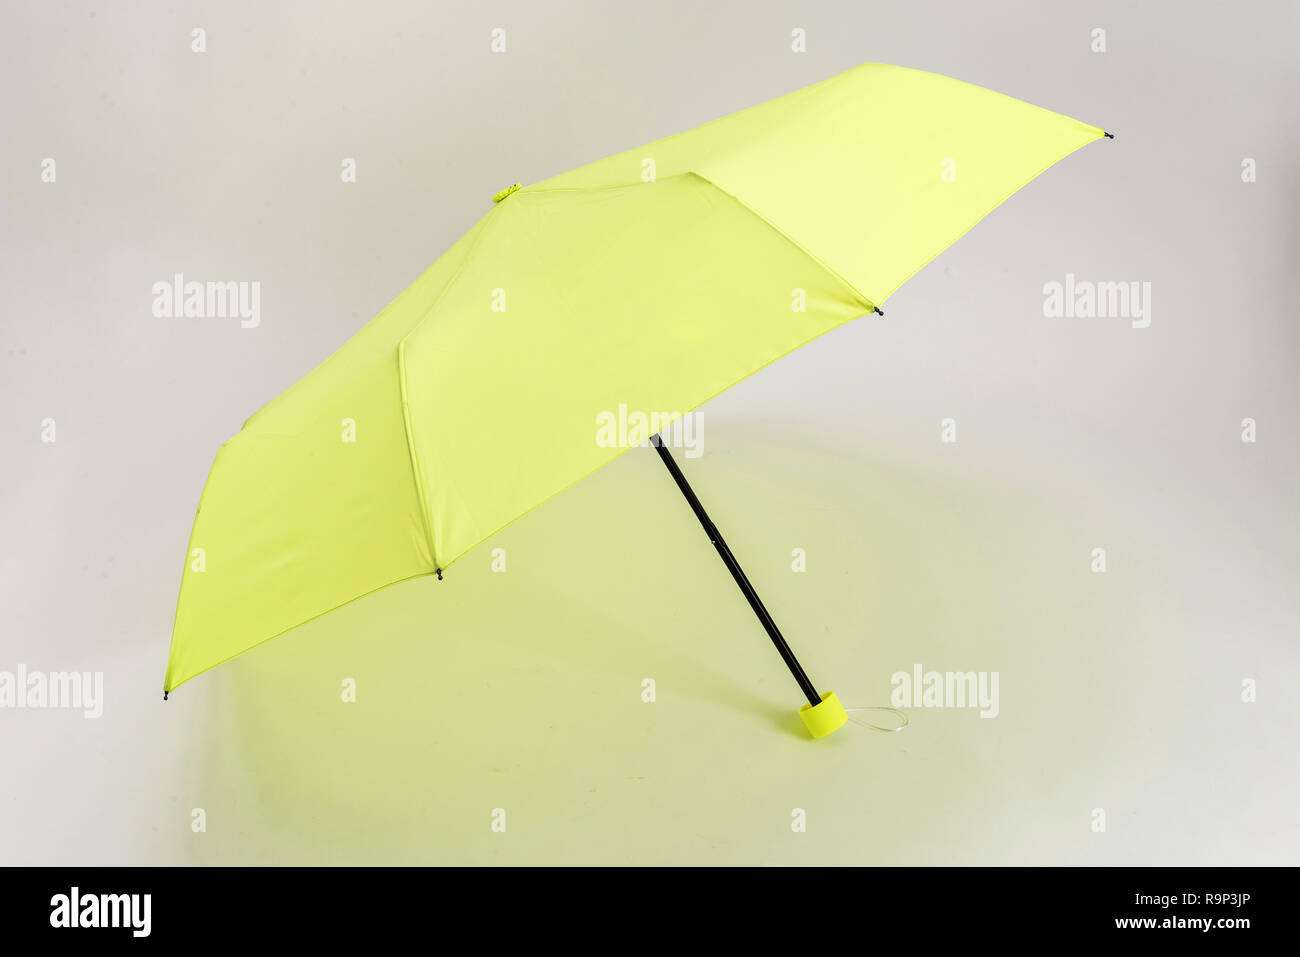 a white background and a yellow umbrella - Stock Image